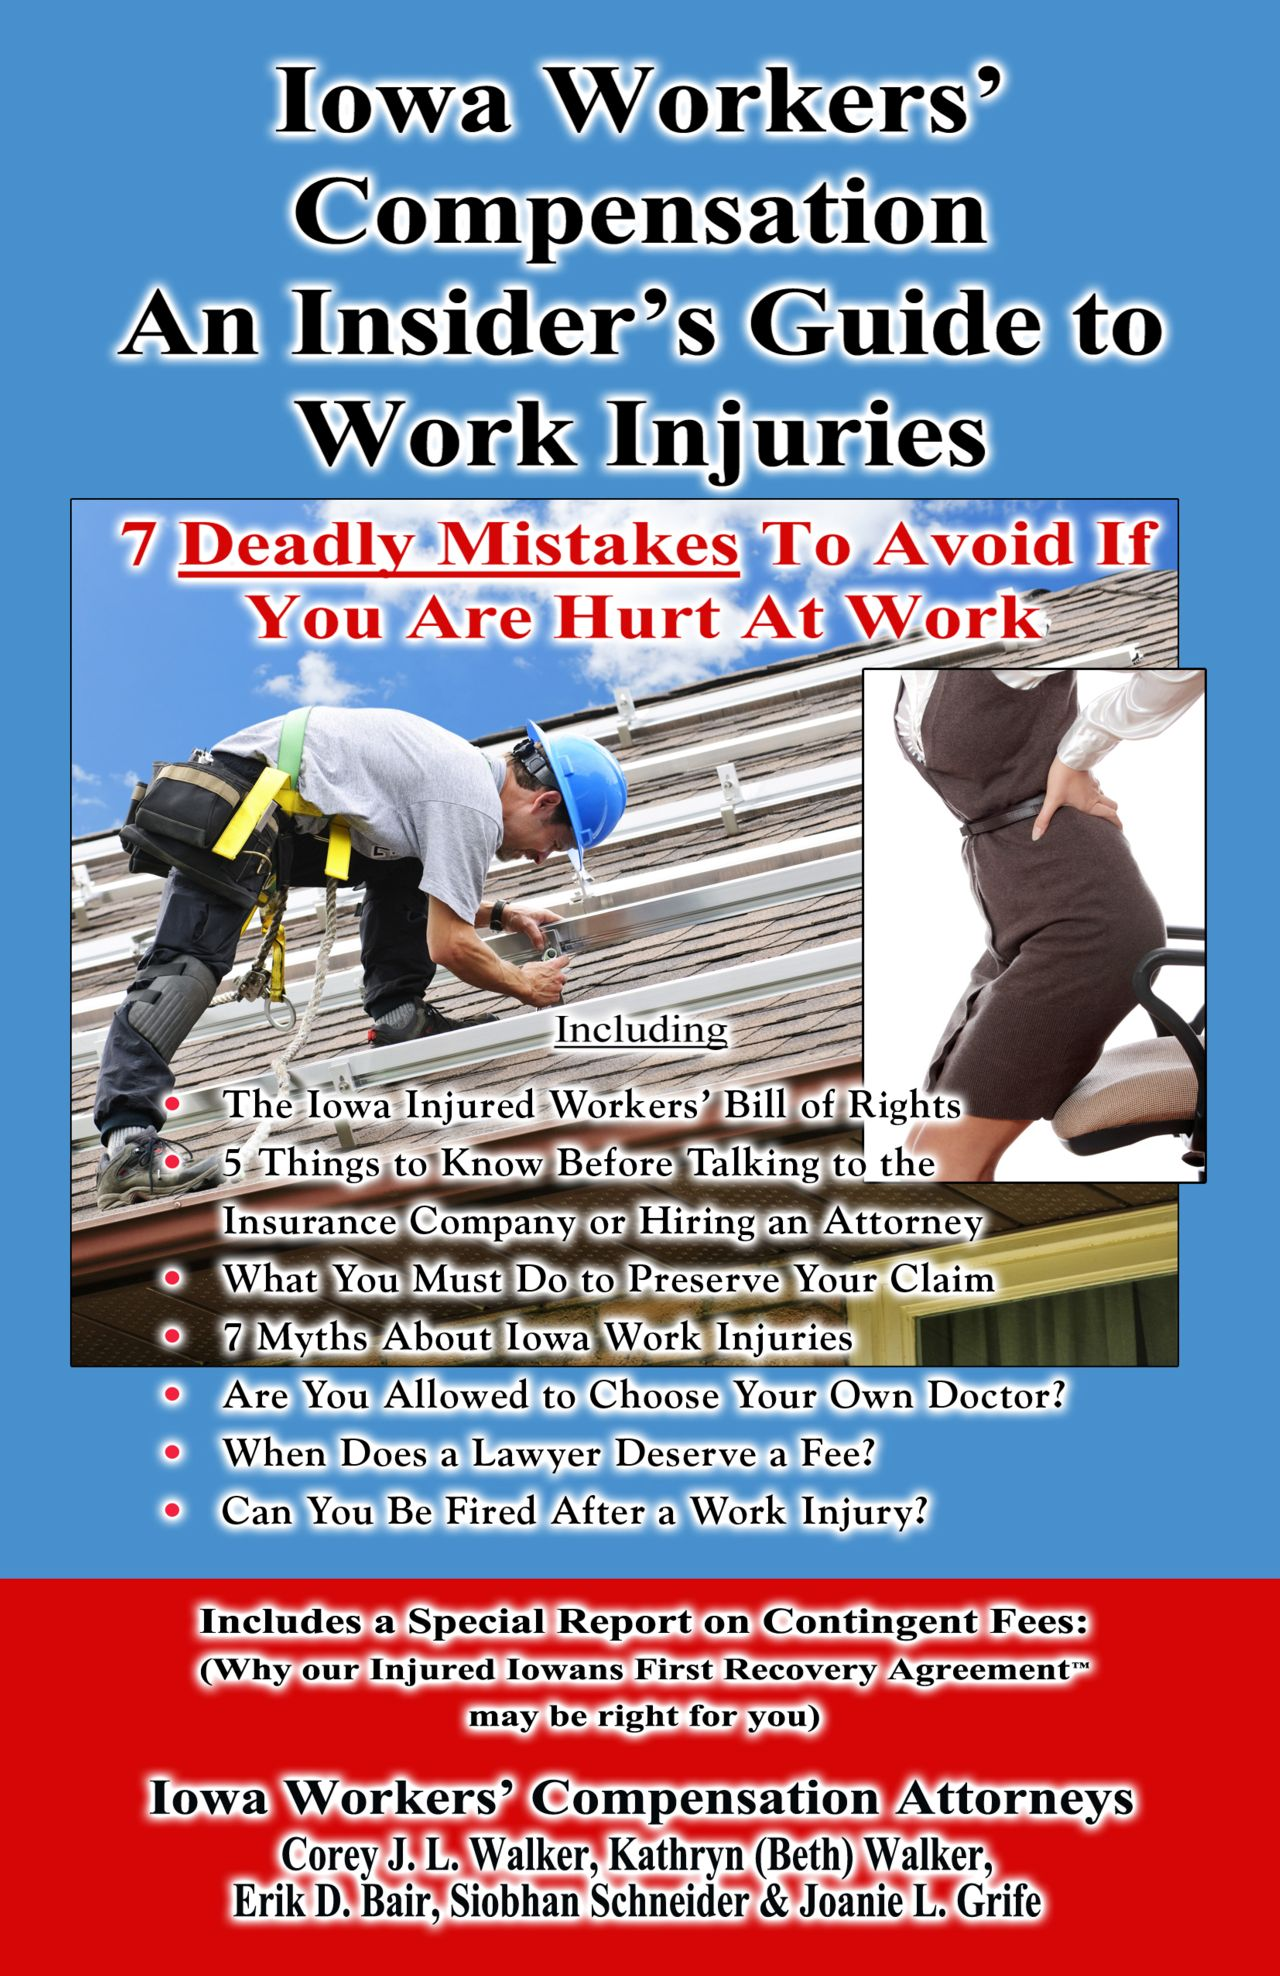 Iowa Workers' Compensation Guide 7 deadly mistakes to avoid if you are hurt at work by iowa workers compensationattorneys